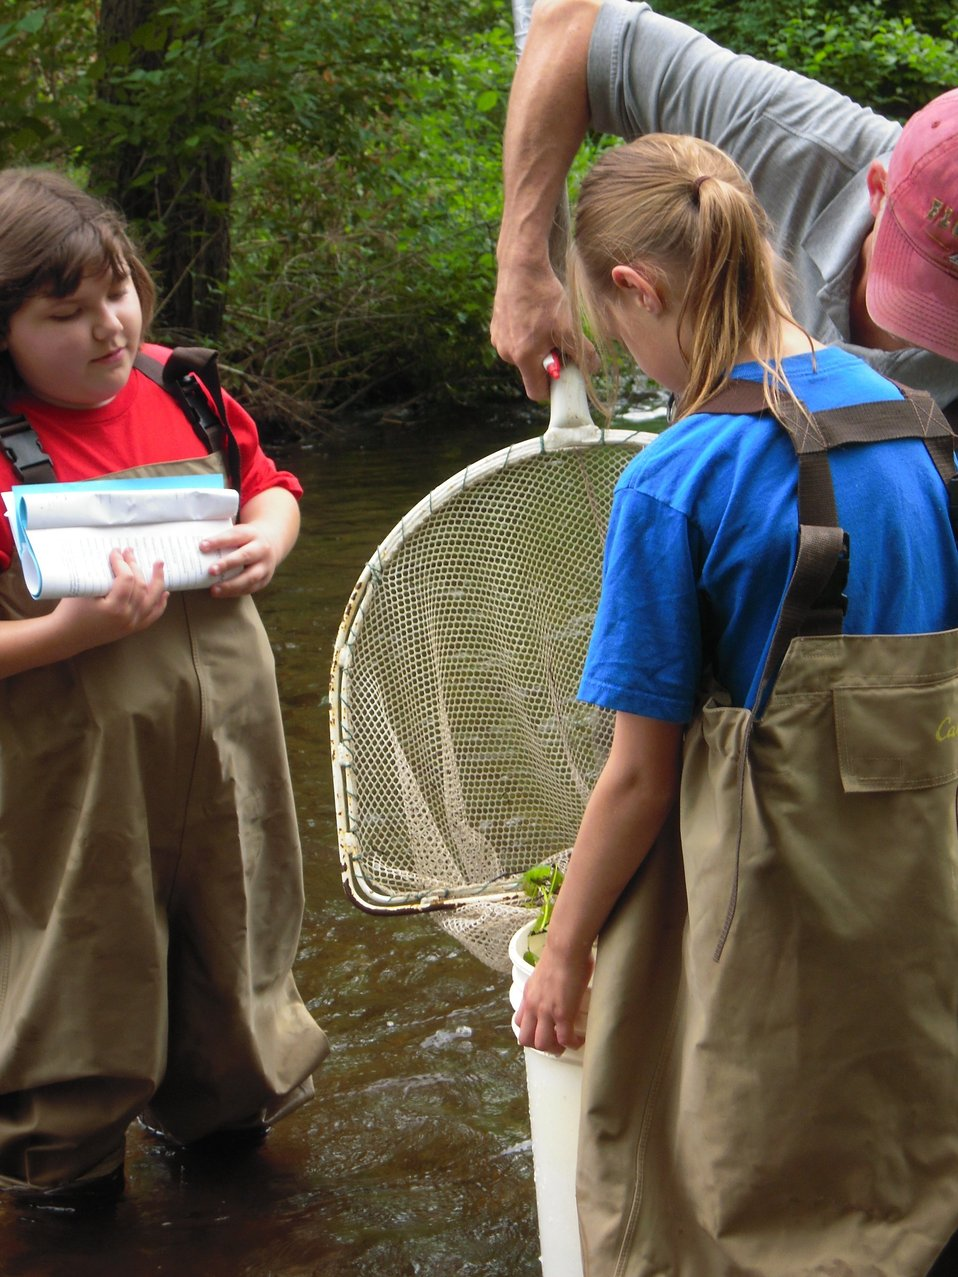 Checking nets for species